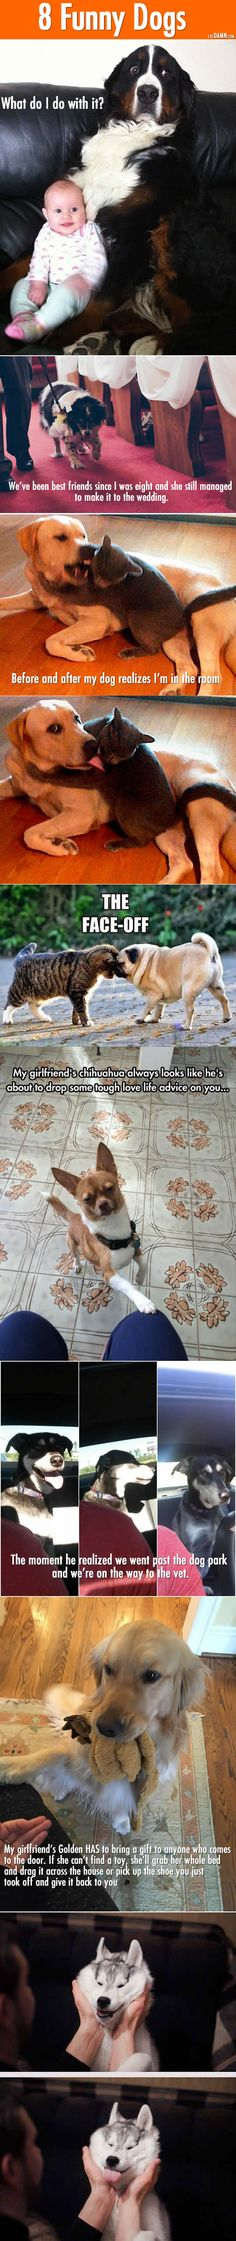 Picture # 149 collection funny dogs picture pics) for December 2015 – Funny Pictures, Quotes, Pics, Photos, Images and Very Cute animals. Cute Funny Animals, Funny Animal Pictures, Funny Cute, Funny Dogs, Cute Pictures, Animal Pics, Hilarious Sayings, Dog Pictures, 9gag Funny